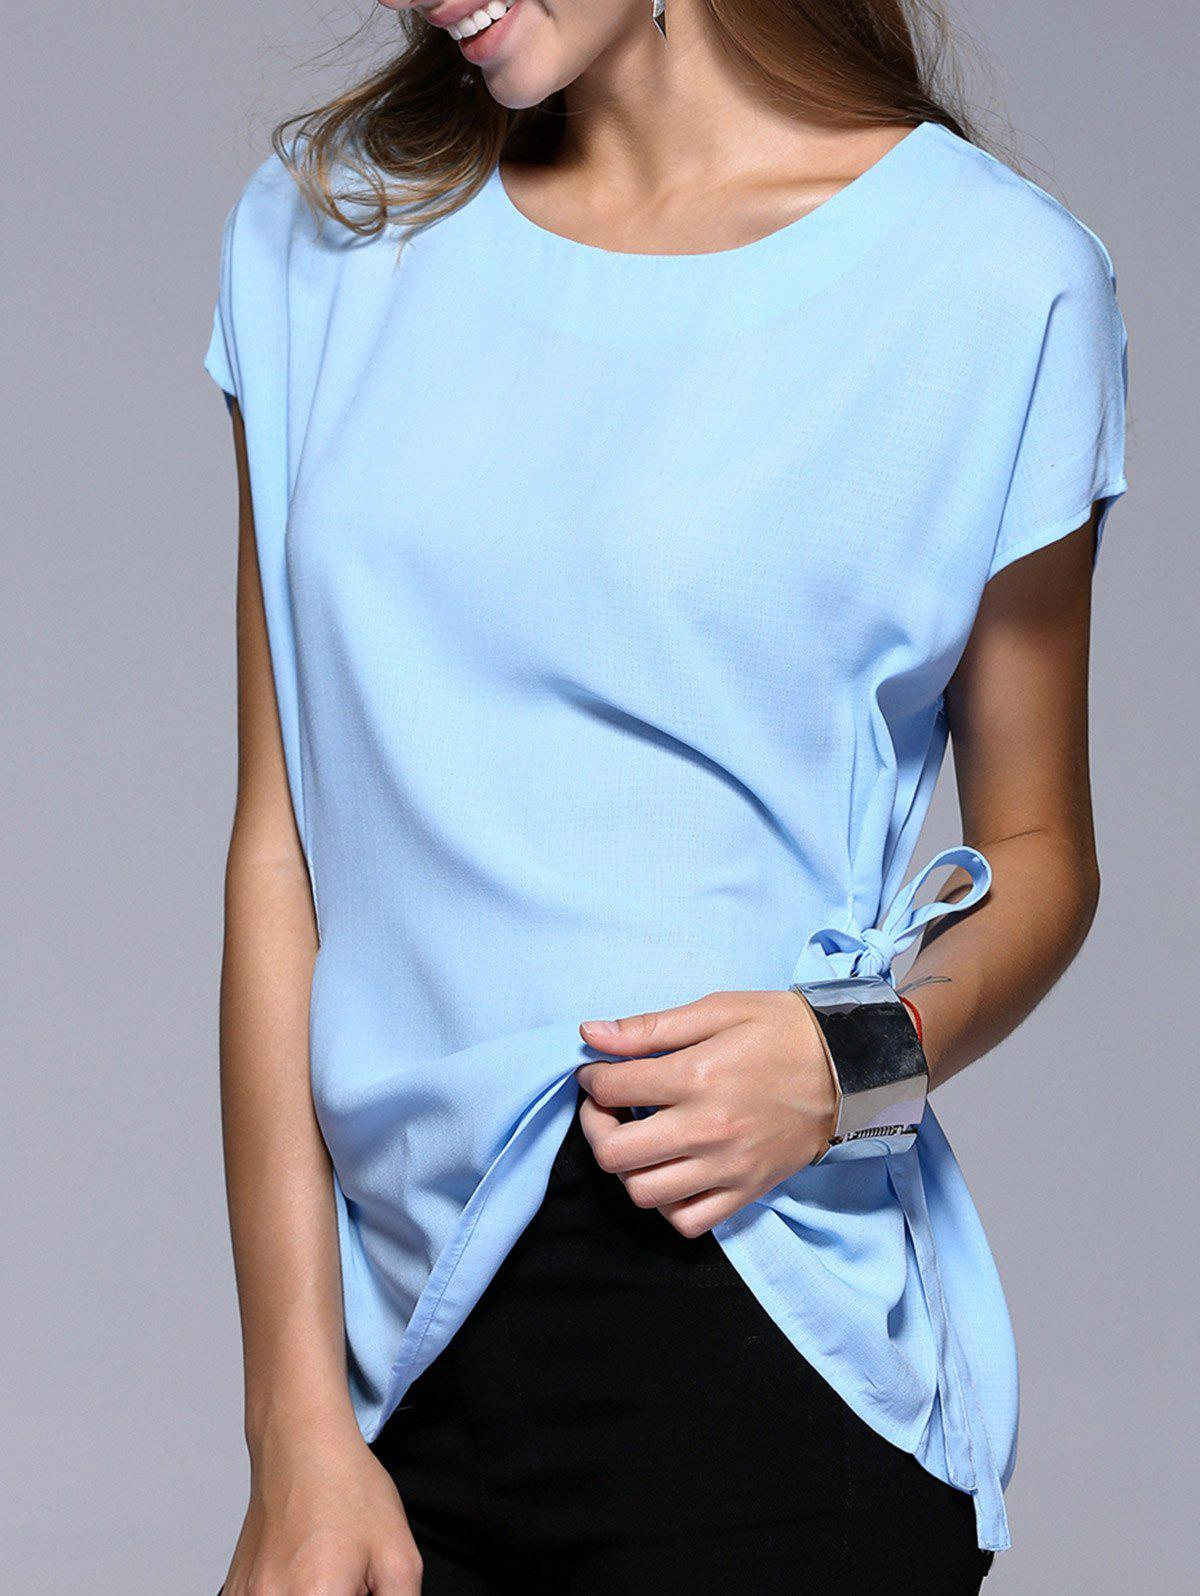 Romantic Date Side Bowknot Embellished Waisted Blouse - LIGHT BLUE L